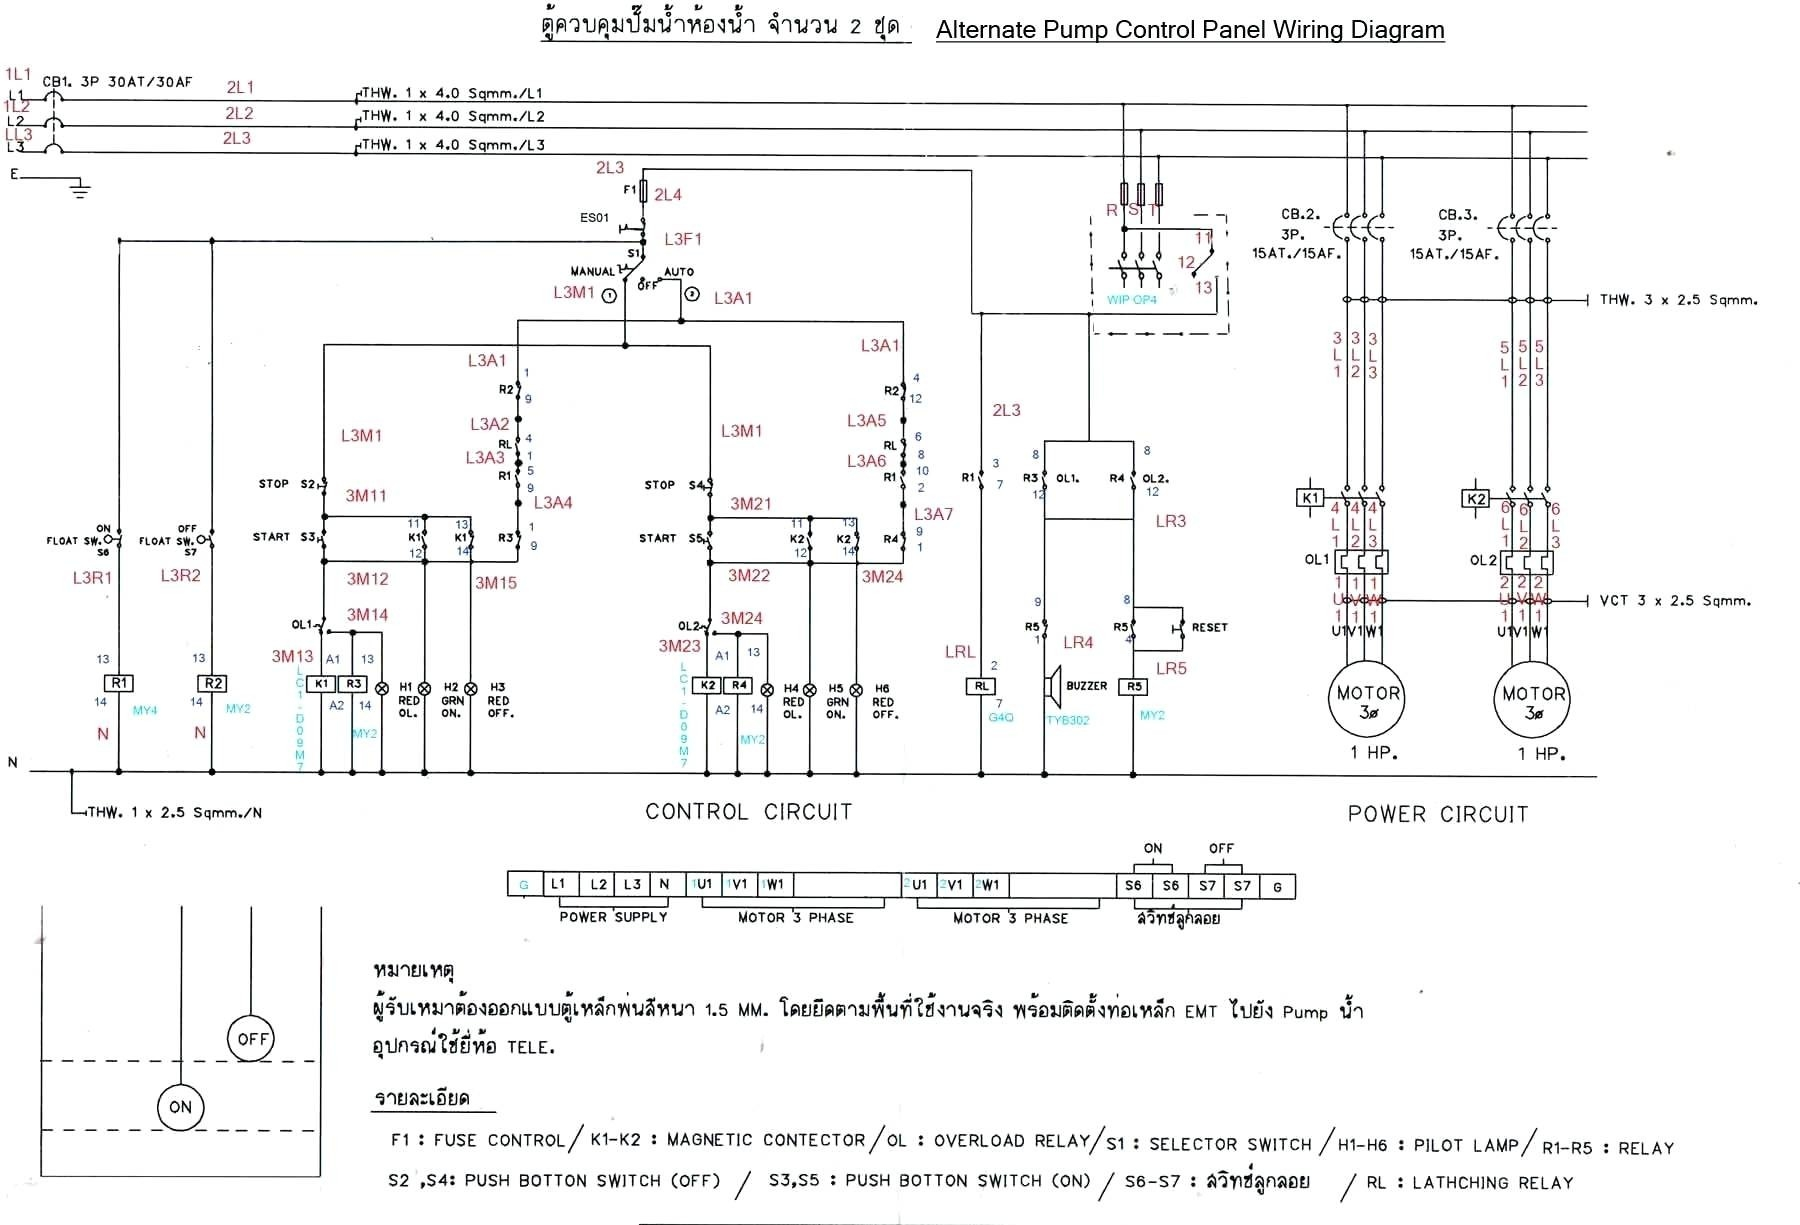 fire pump controller wiring diagram Collection-Wiring Diagram Acb Schneider New Diesel Engine Fire Pump Controller Wiring Diagram 18-t